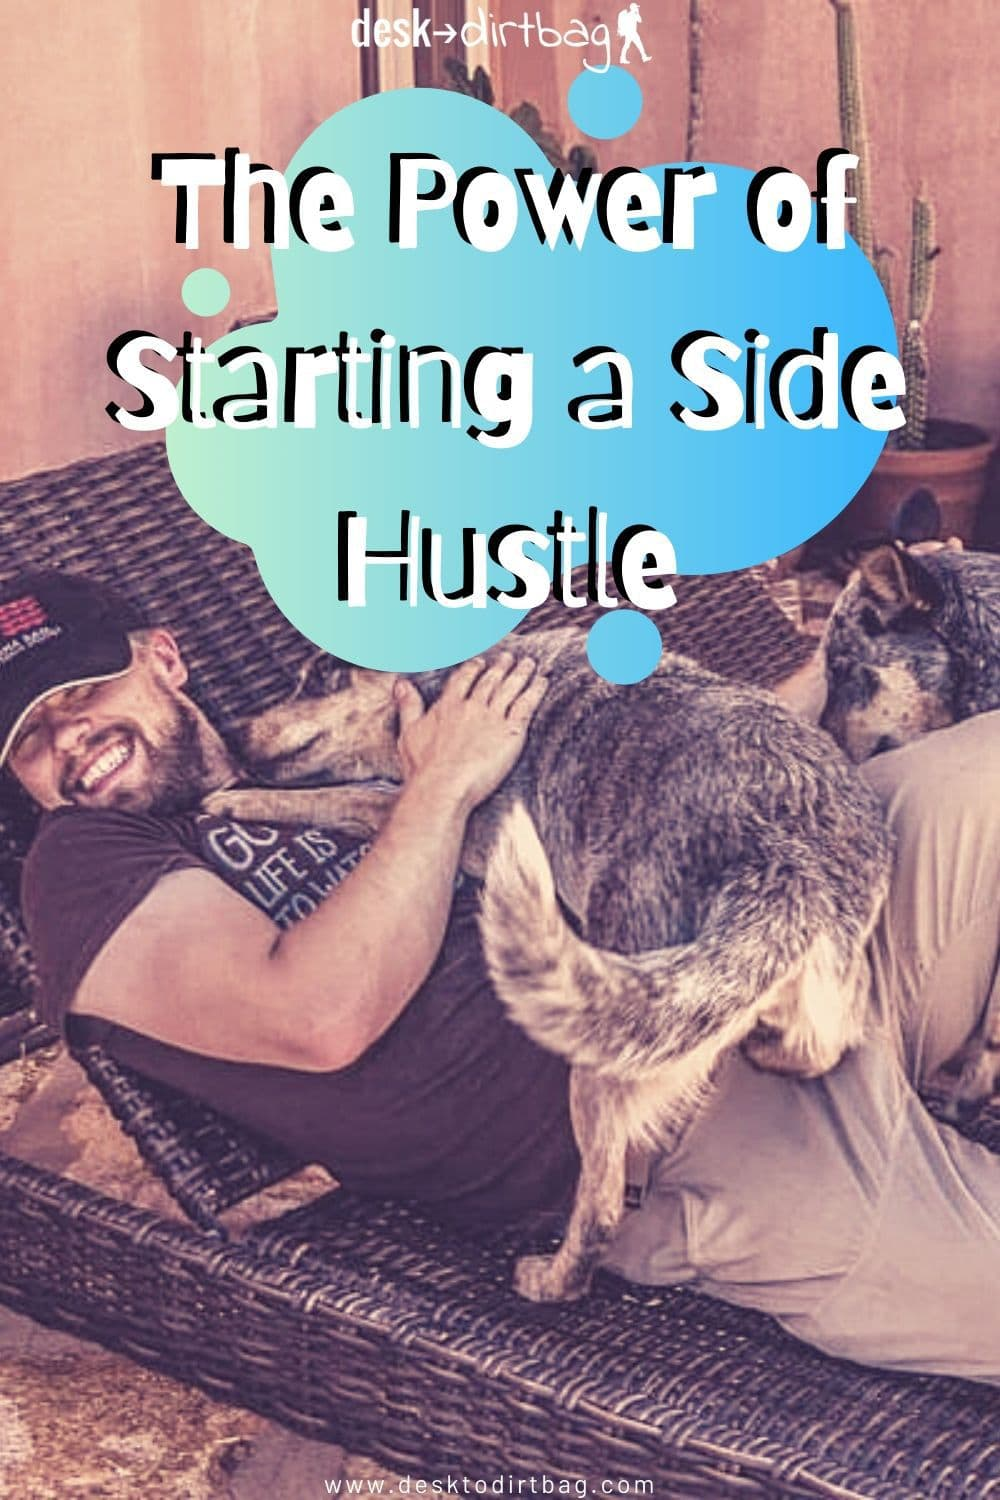 The Power of Starting a Side Hustle (Work Online While Traveling) freelancing